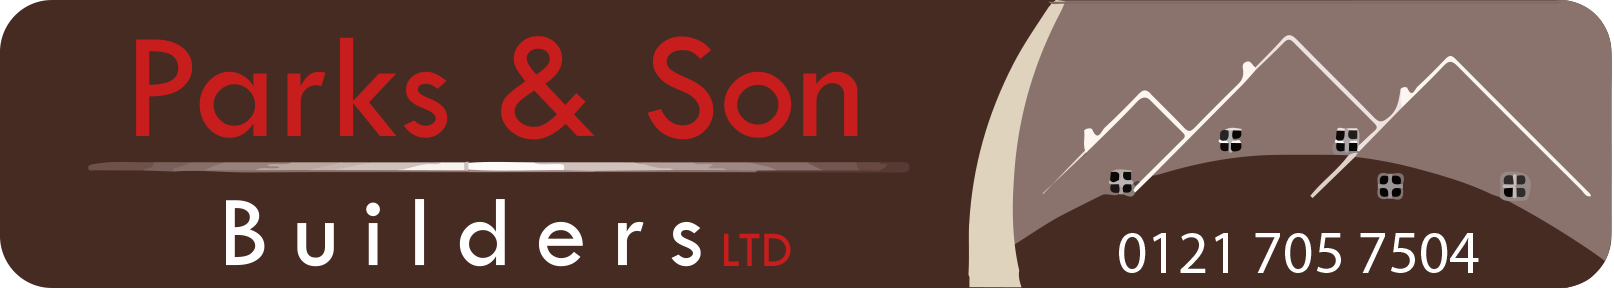 Parks & Son Builders Ltd